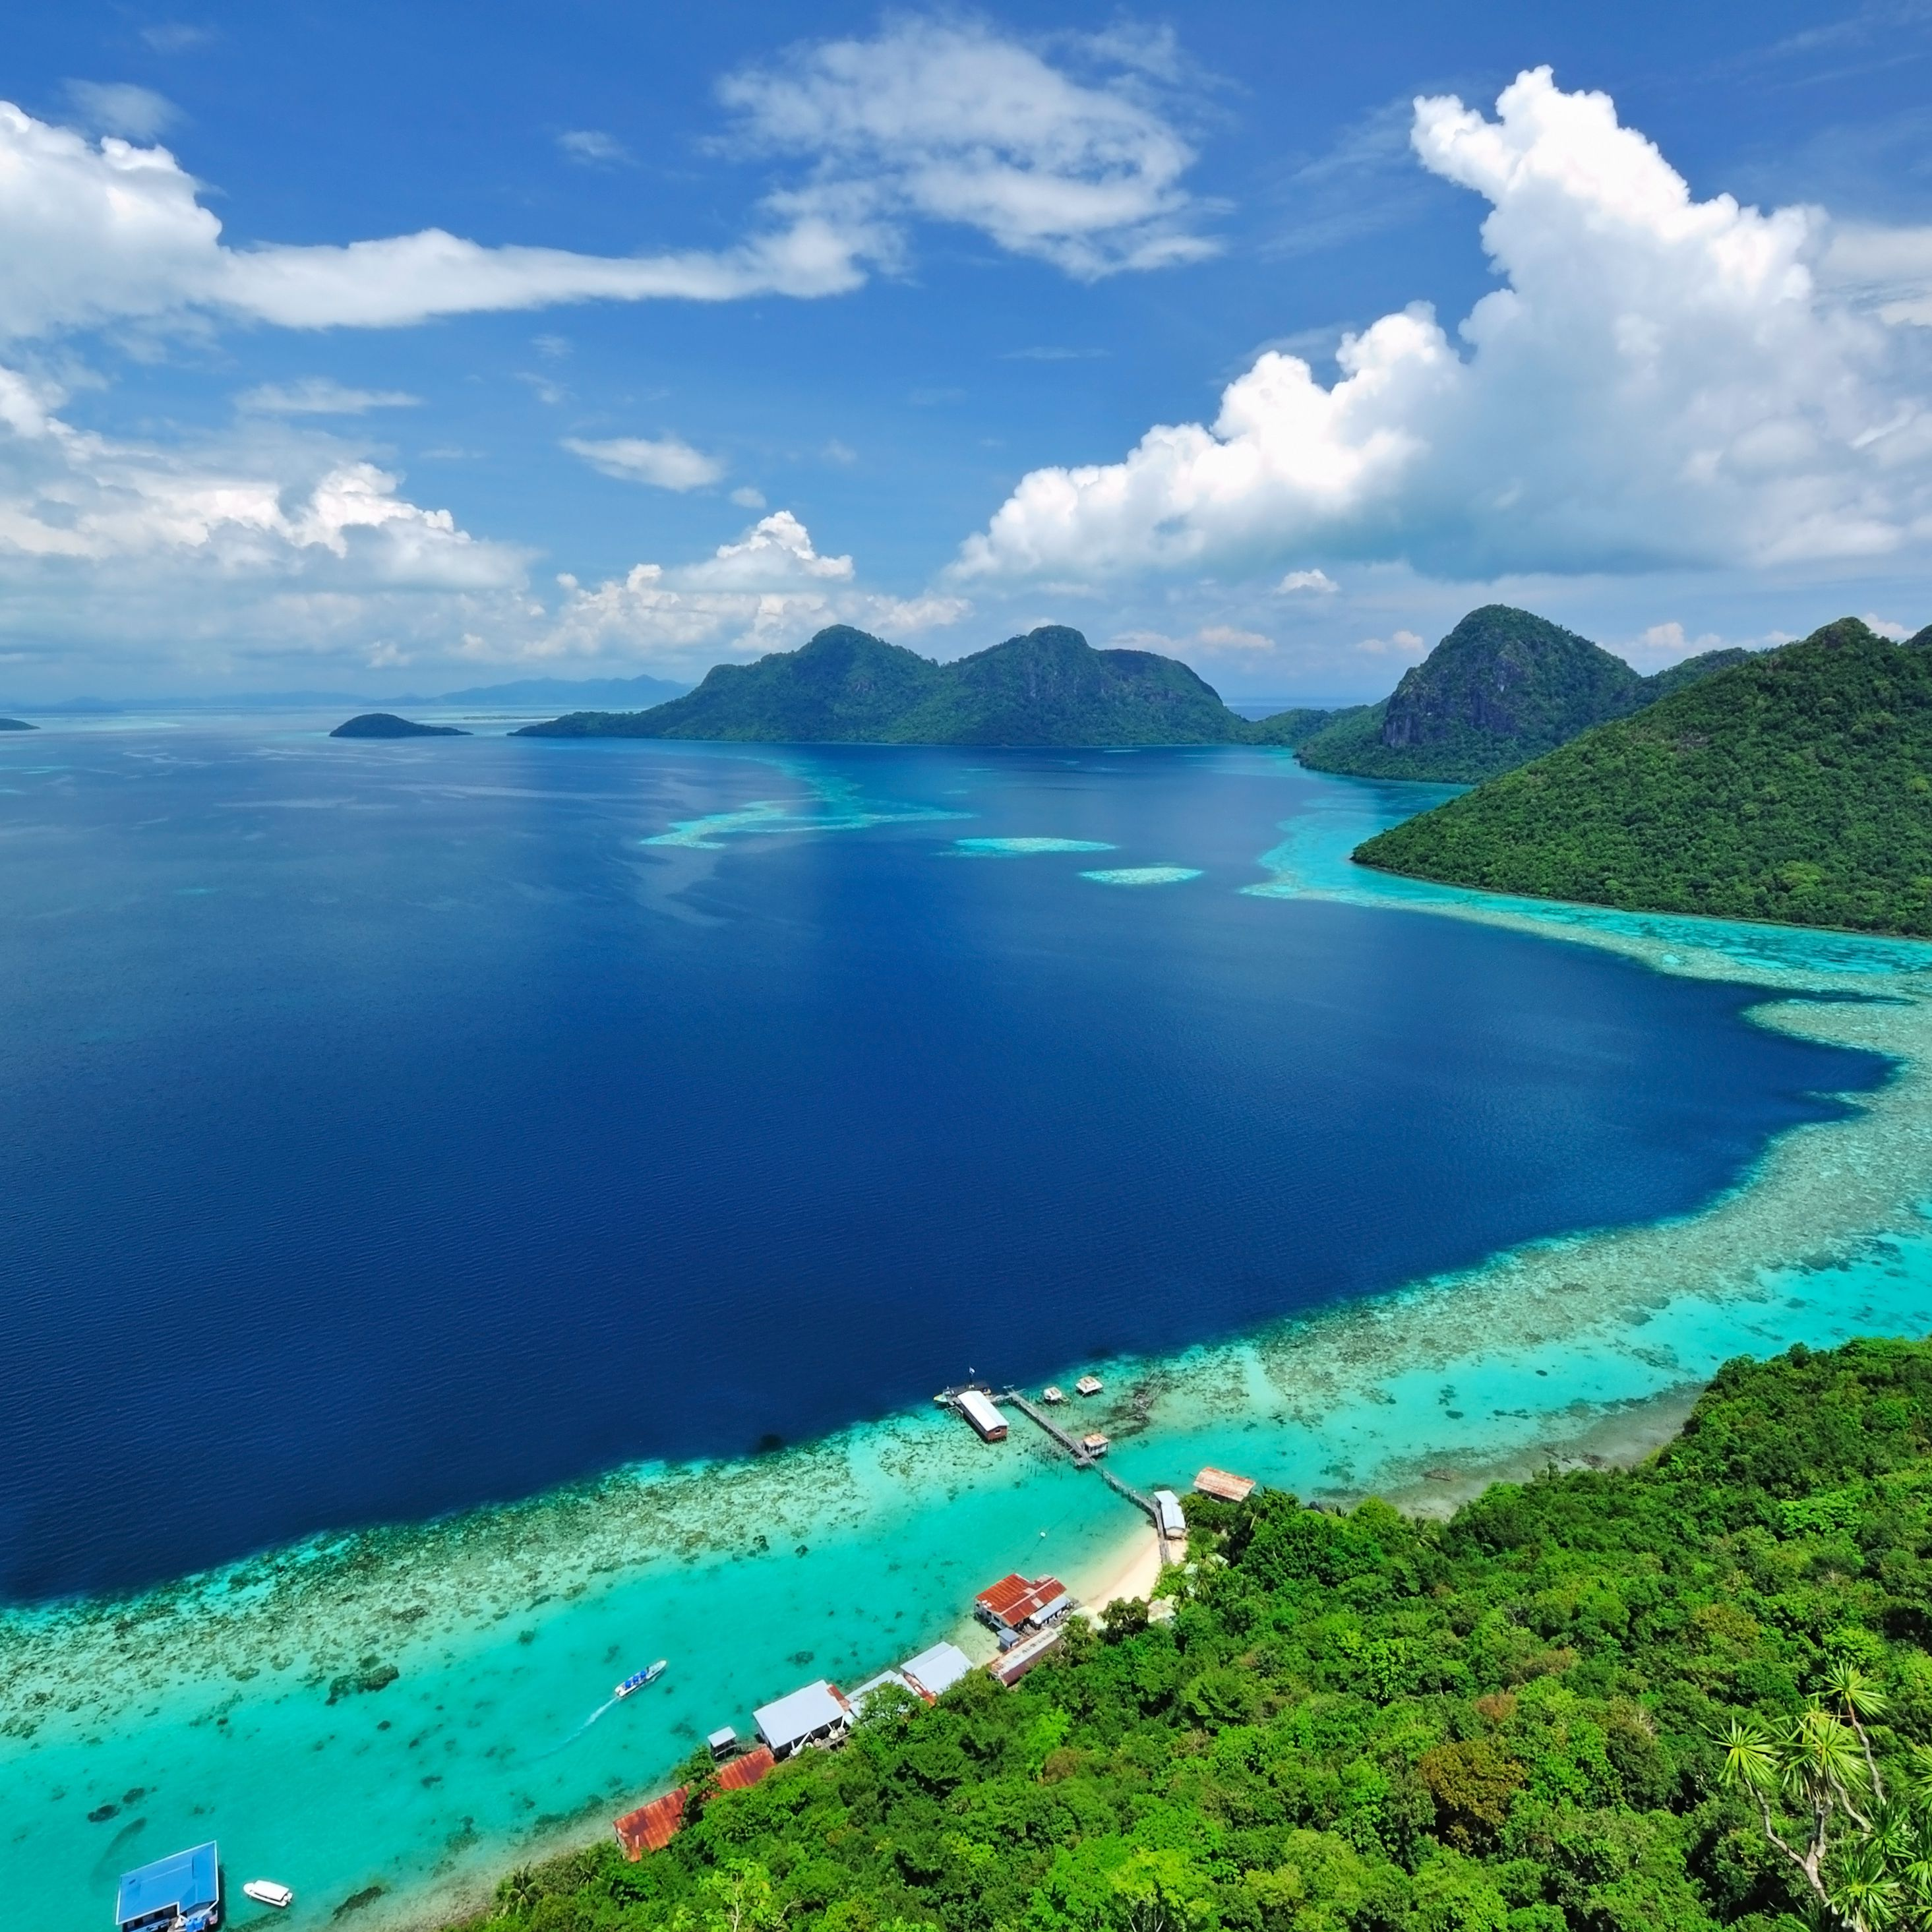 Borneo Island: Asia Vacation Ideas: Making The Most Out Of The Next Visit